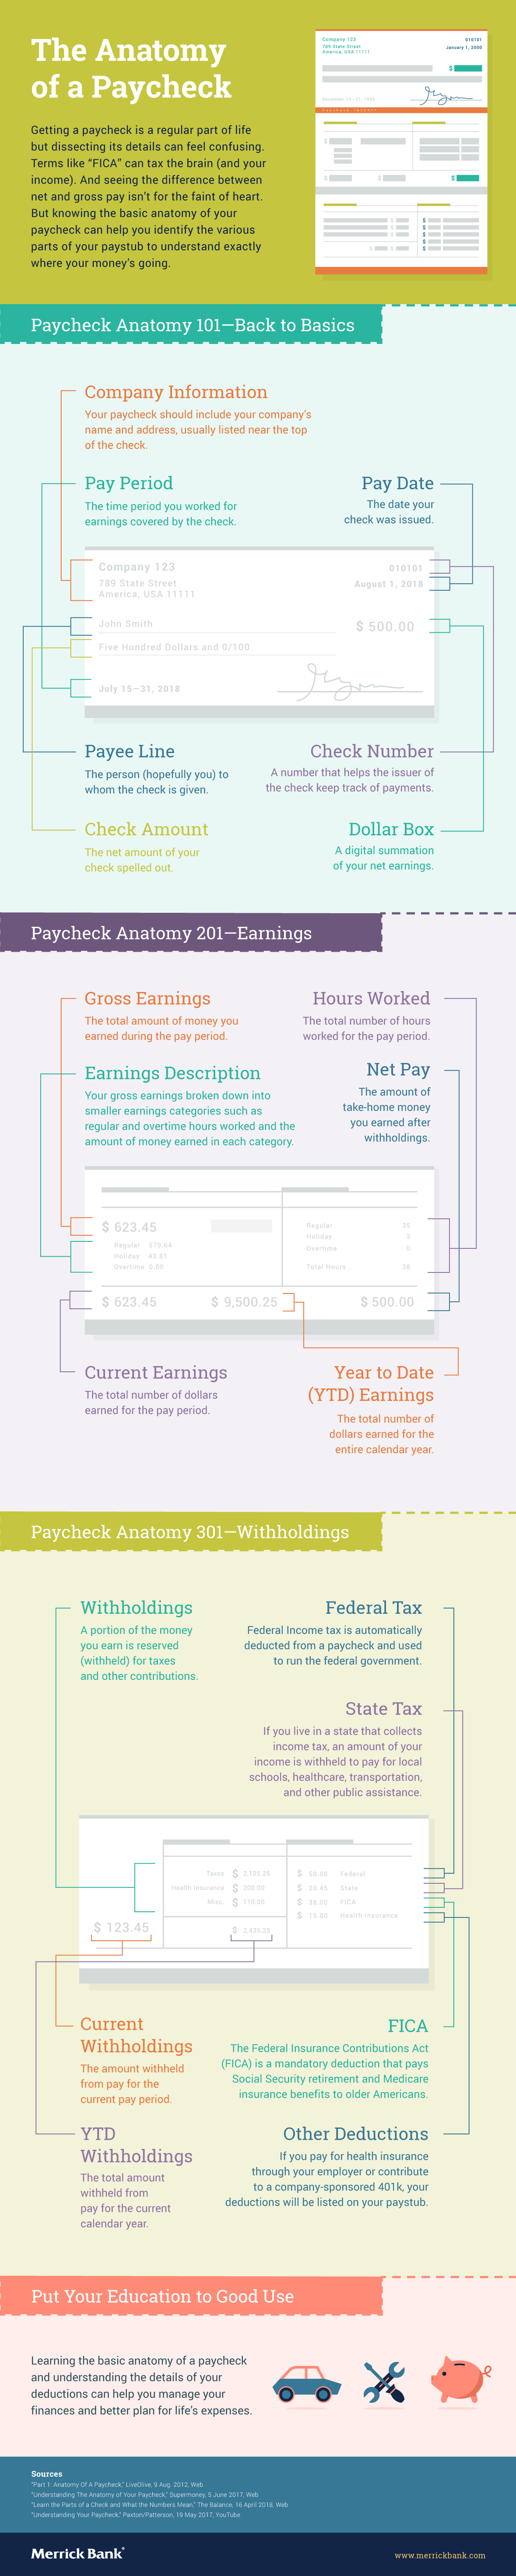 Anatomy of a Paycheck